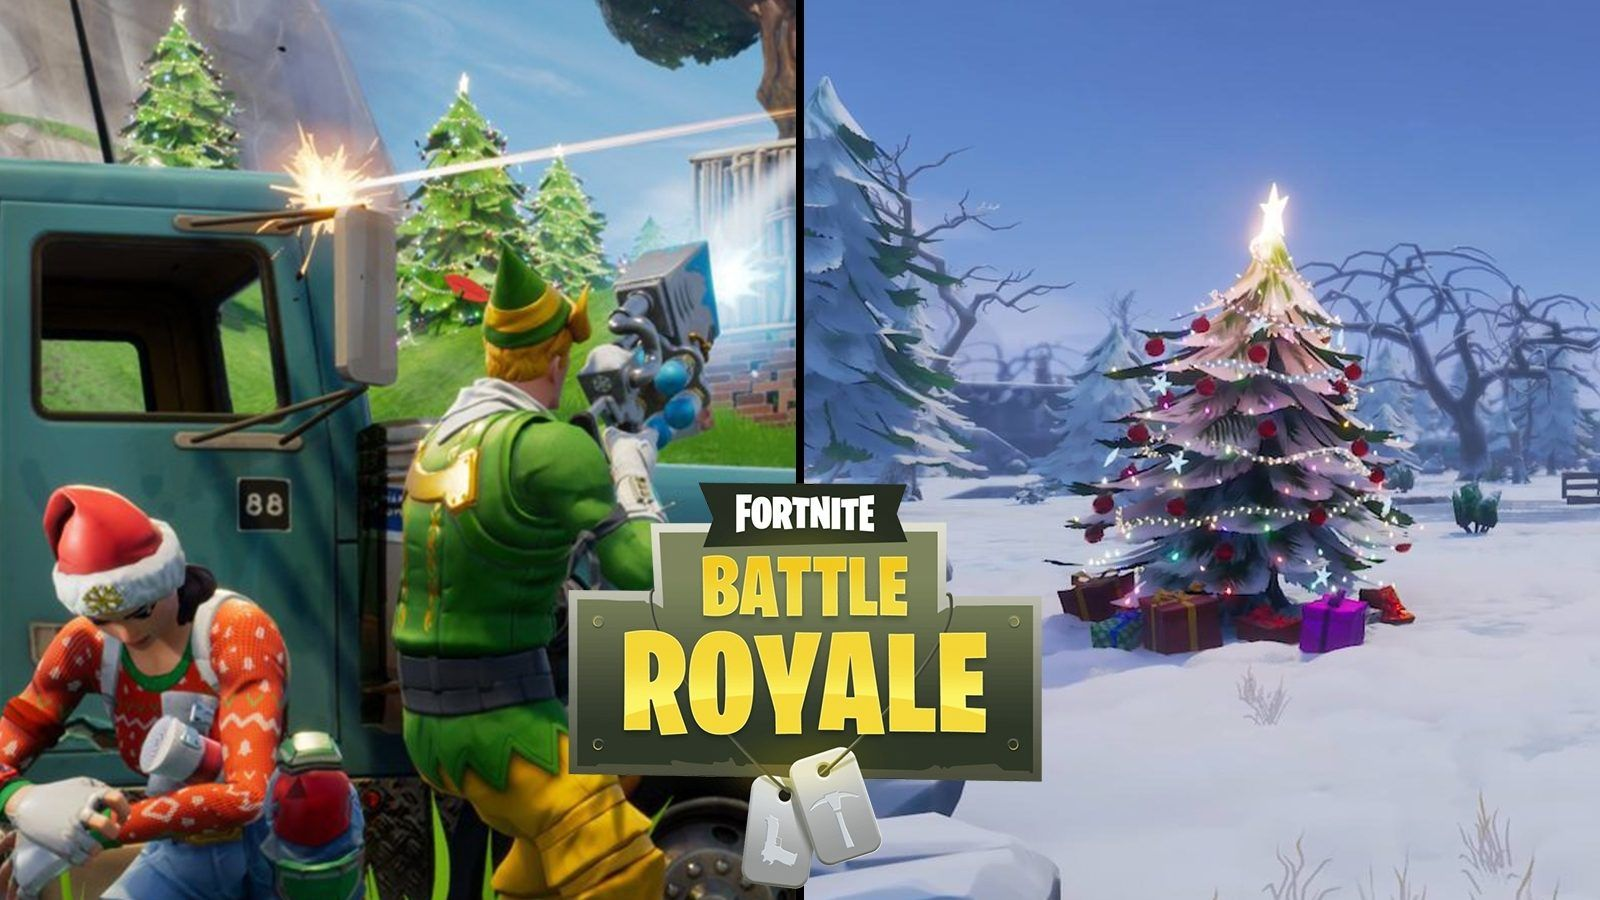 Fortnite Christmas Background Png.Fight All Fortnite Christmas Skins Wallpapers Top Free